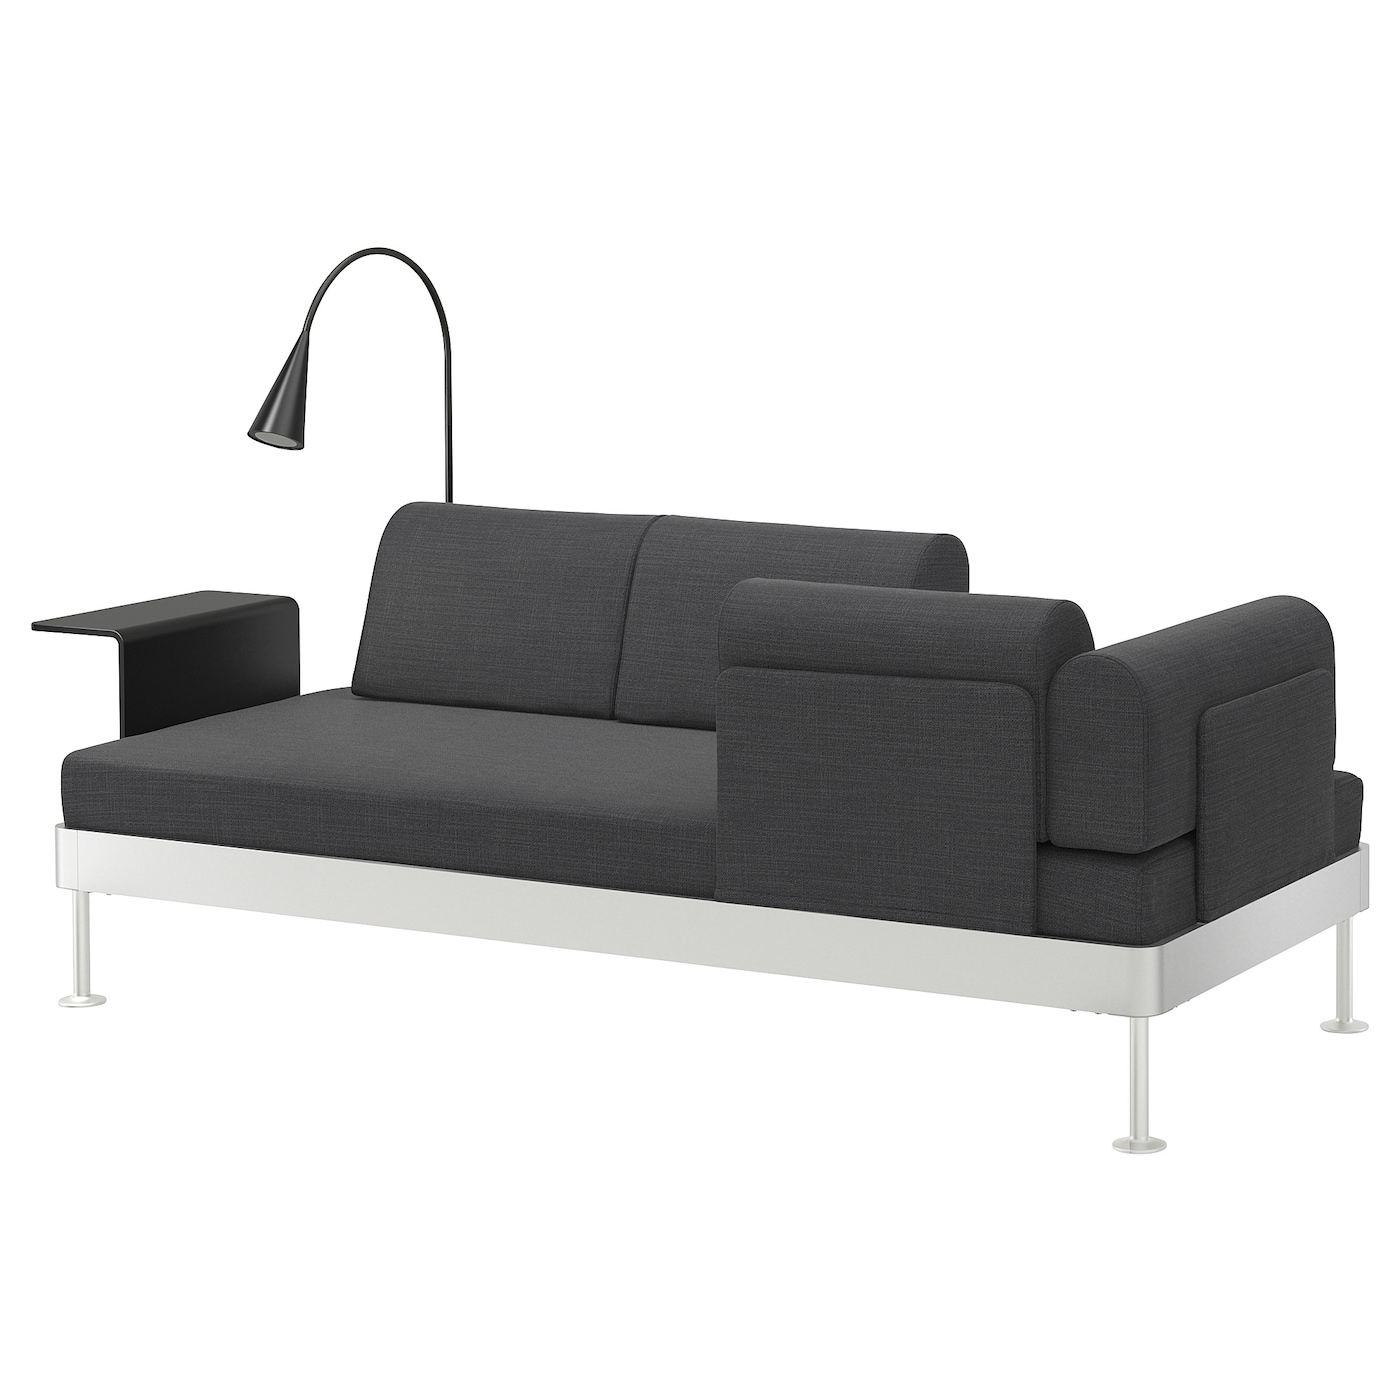 IKEA DELAKTIG 3-seat sofa w side table and lamp